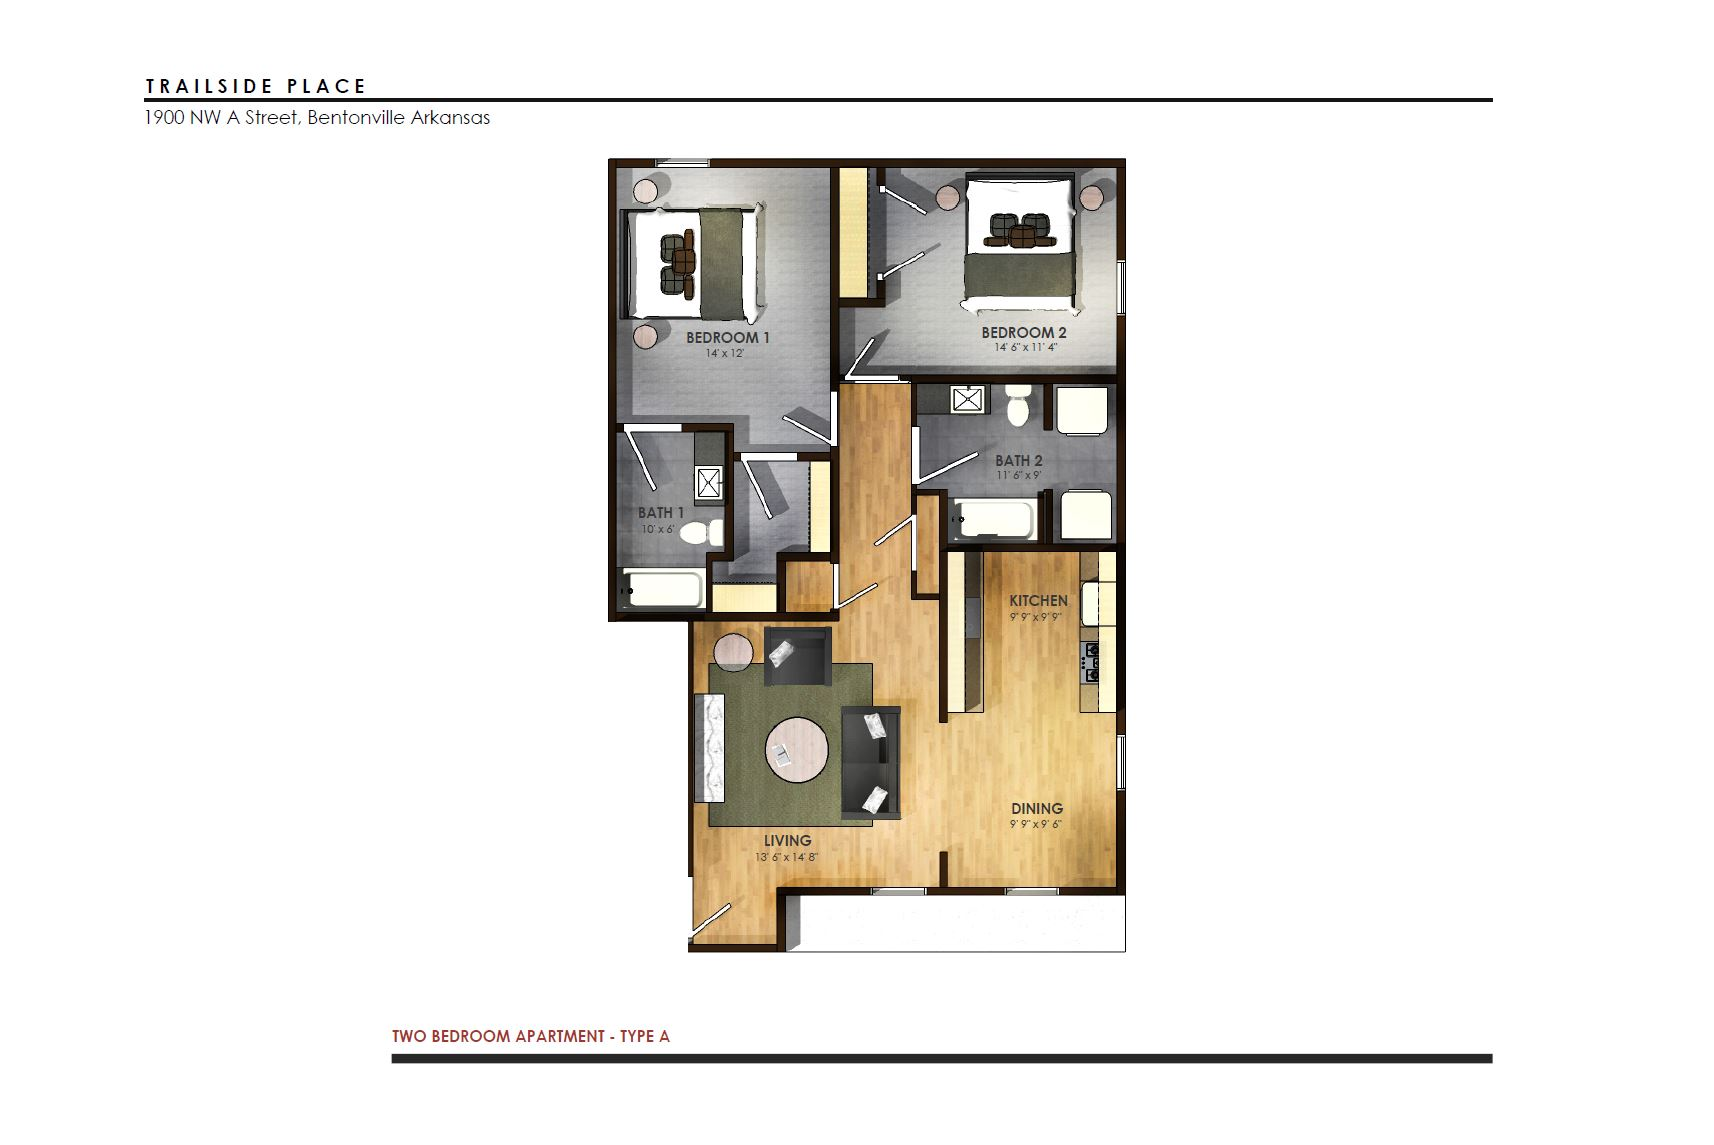 Trailside Place 2 Bedroom, 2 Bathroom   925 Sq/ft